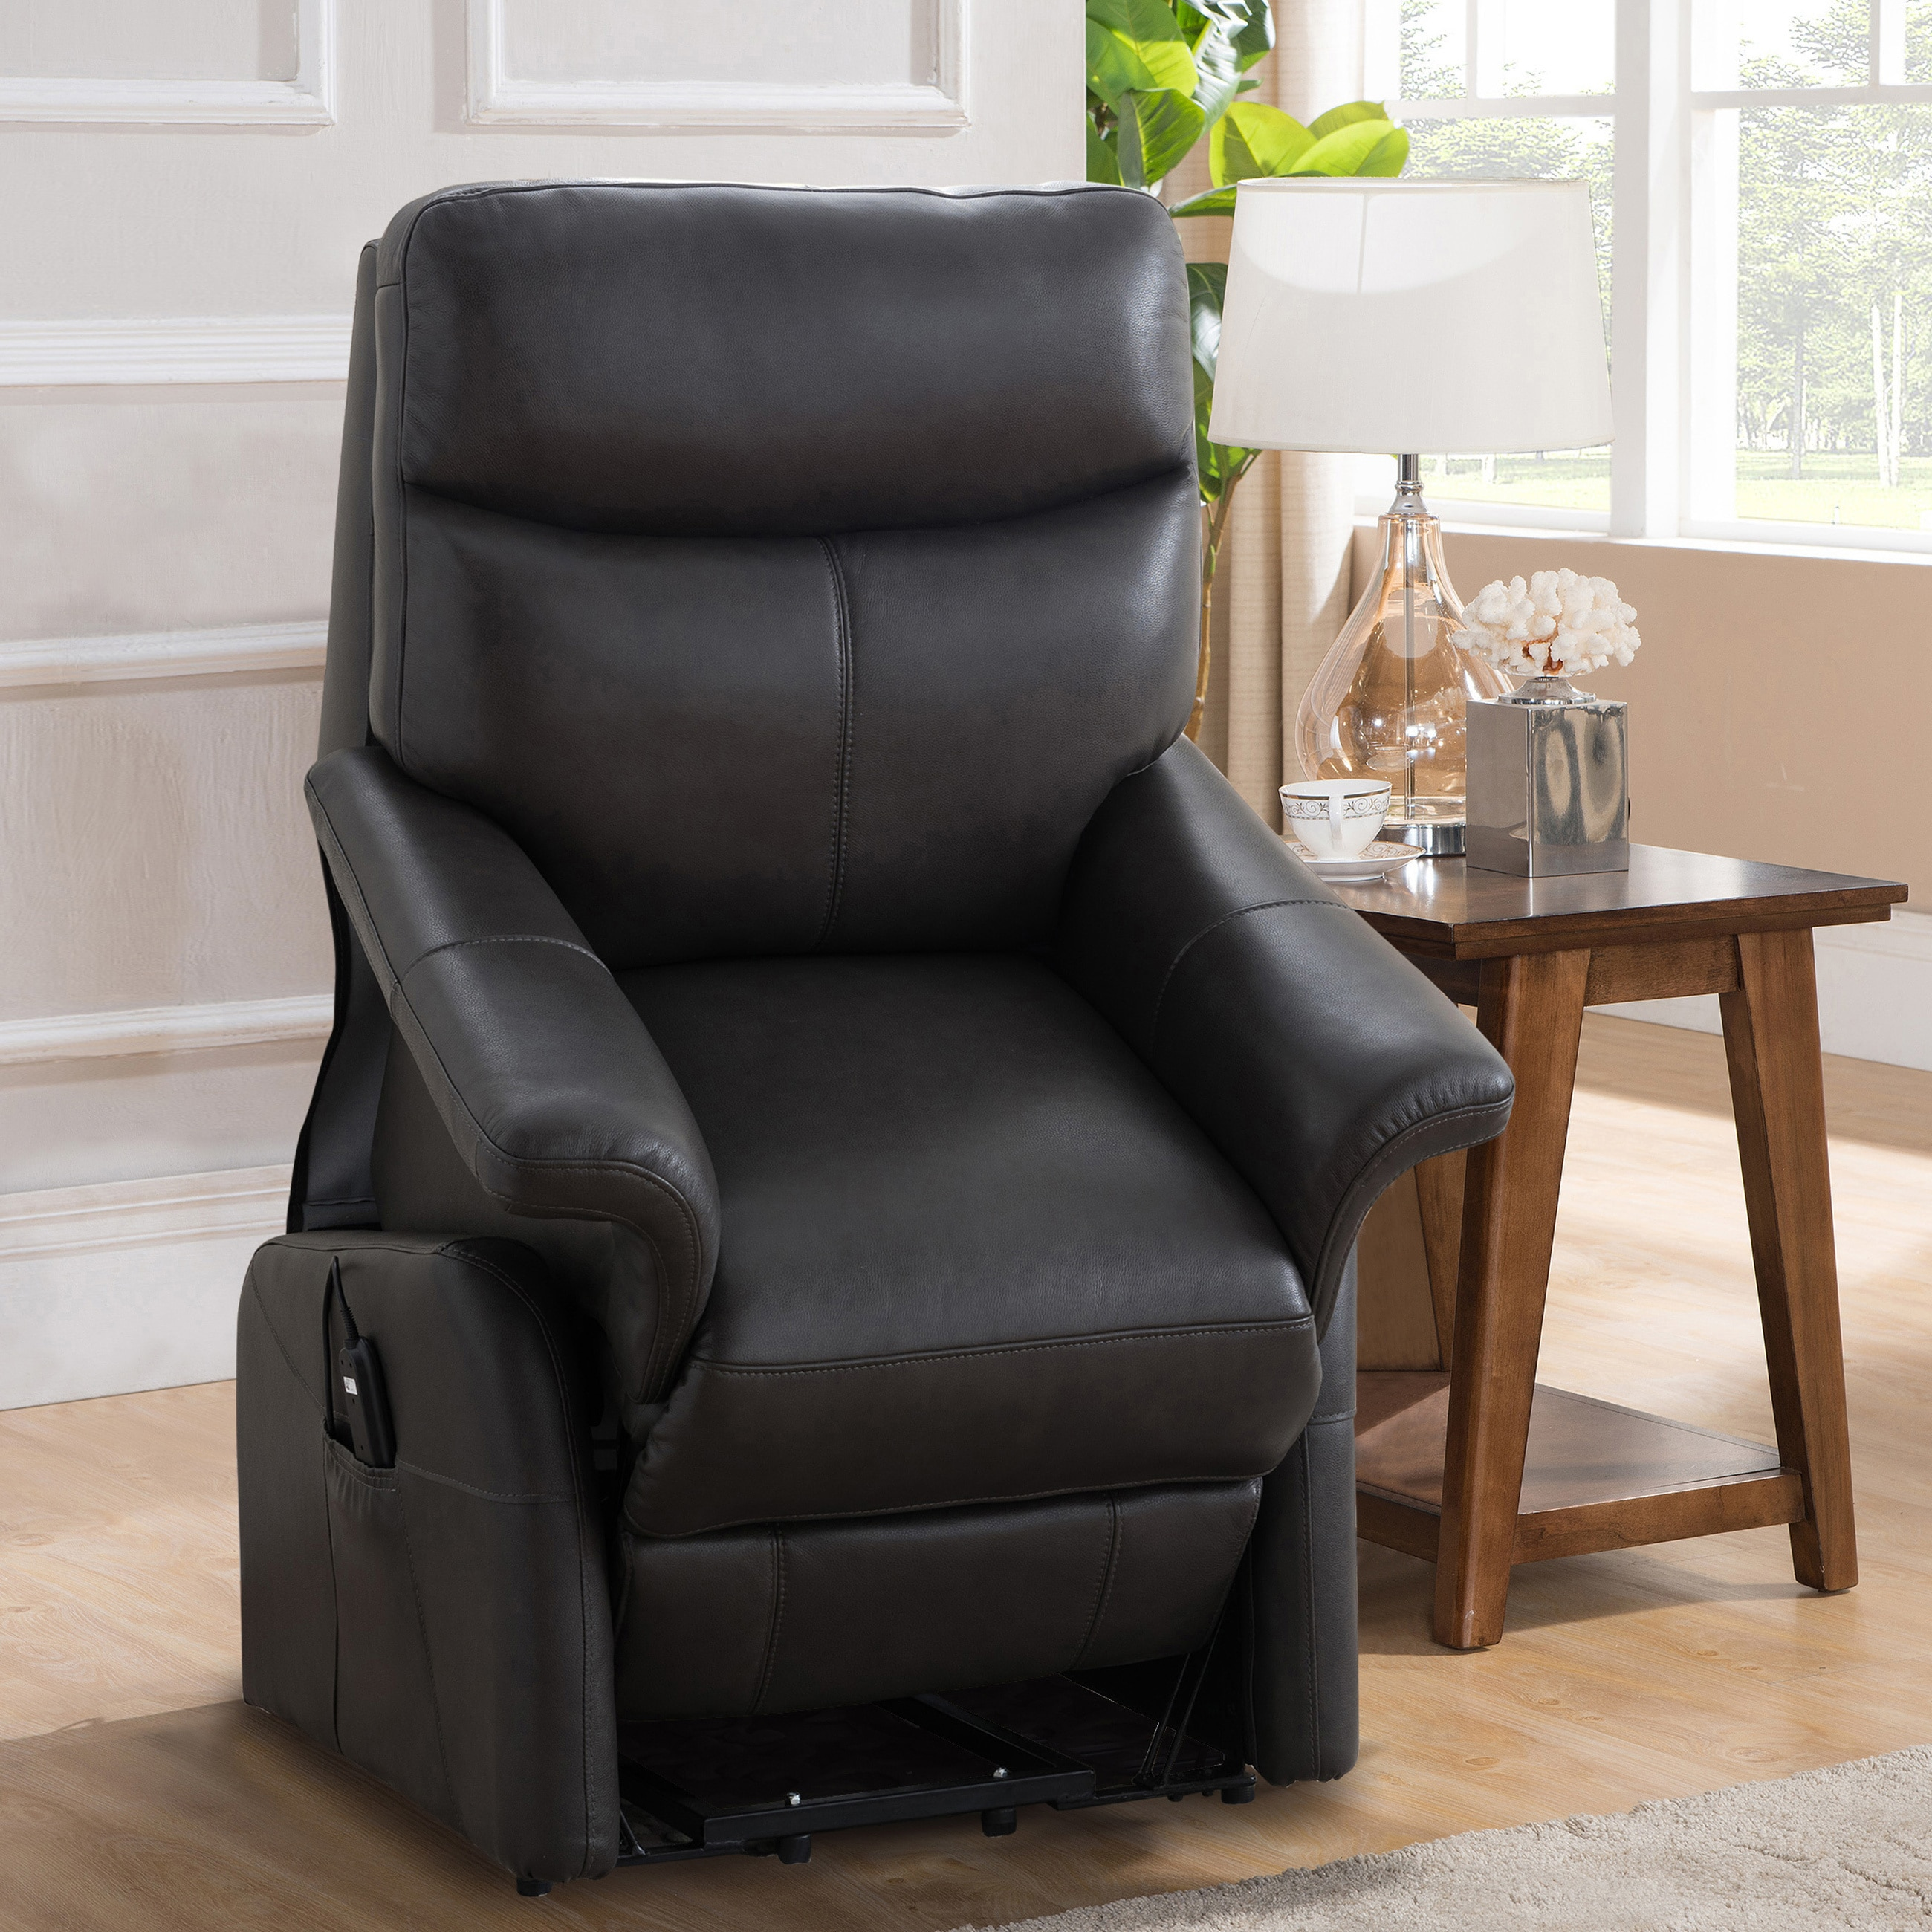 lay flat recliner chairs office chair staples canada shop isla grey top grain leather power lift and on sale free shipping today overstock com 18754815